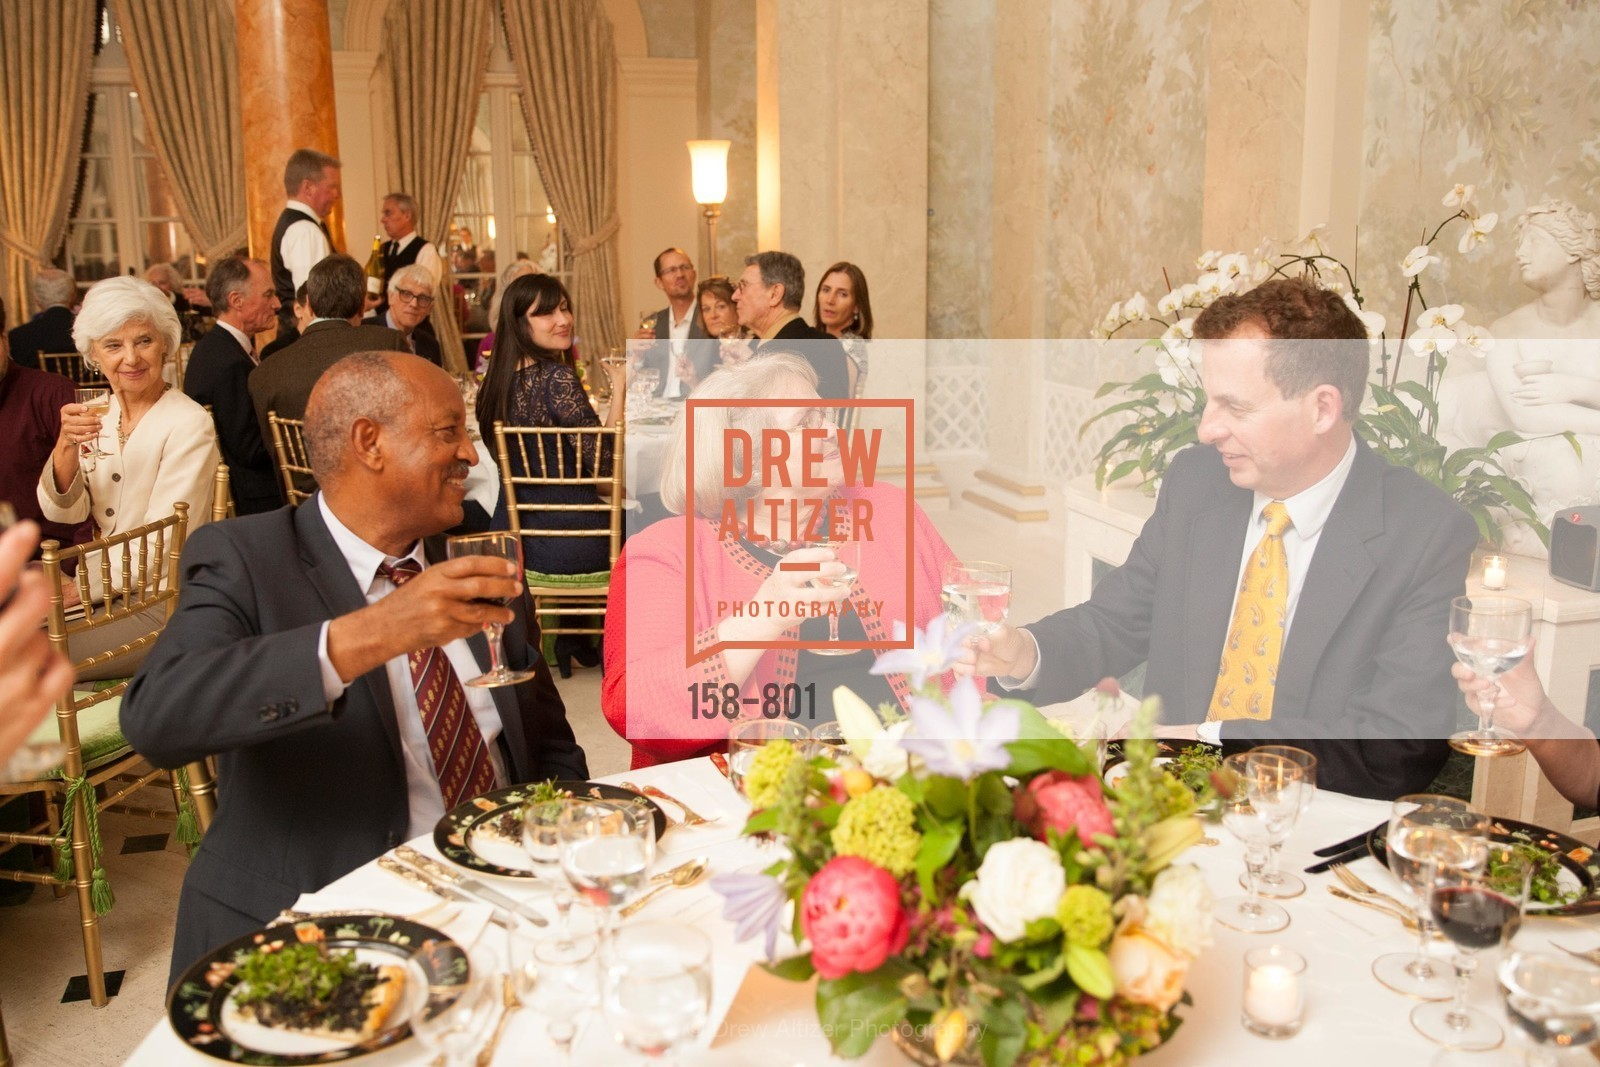 Derhame Asfaw, Camilla Smith, Brian Howell, GETTY Hosts Leakey Foundation Dinner, US, April 23rd, 2015,Drew Altizer, Drew Altizer Photography, full-service agency, private events, San Francisco photographer, photographer california